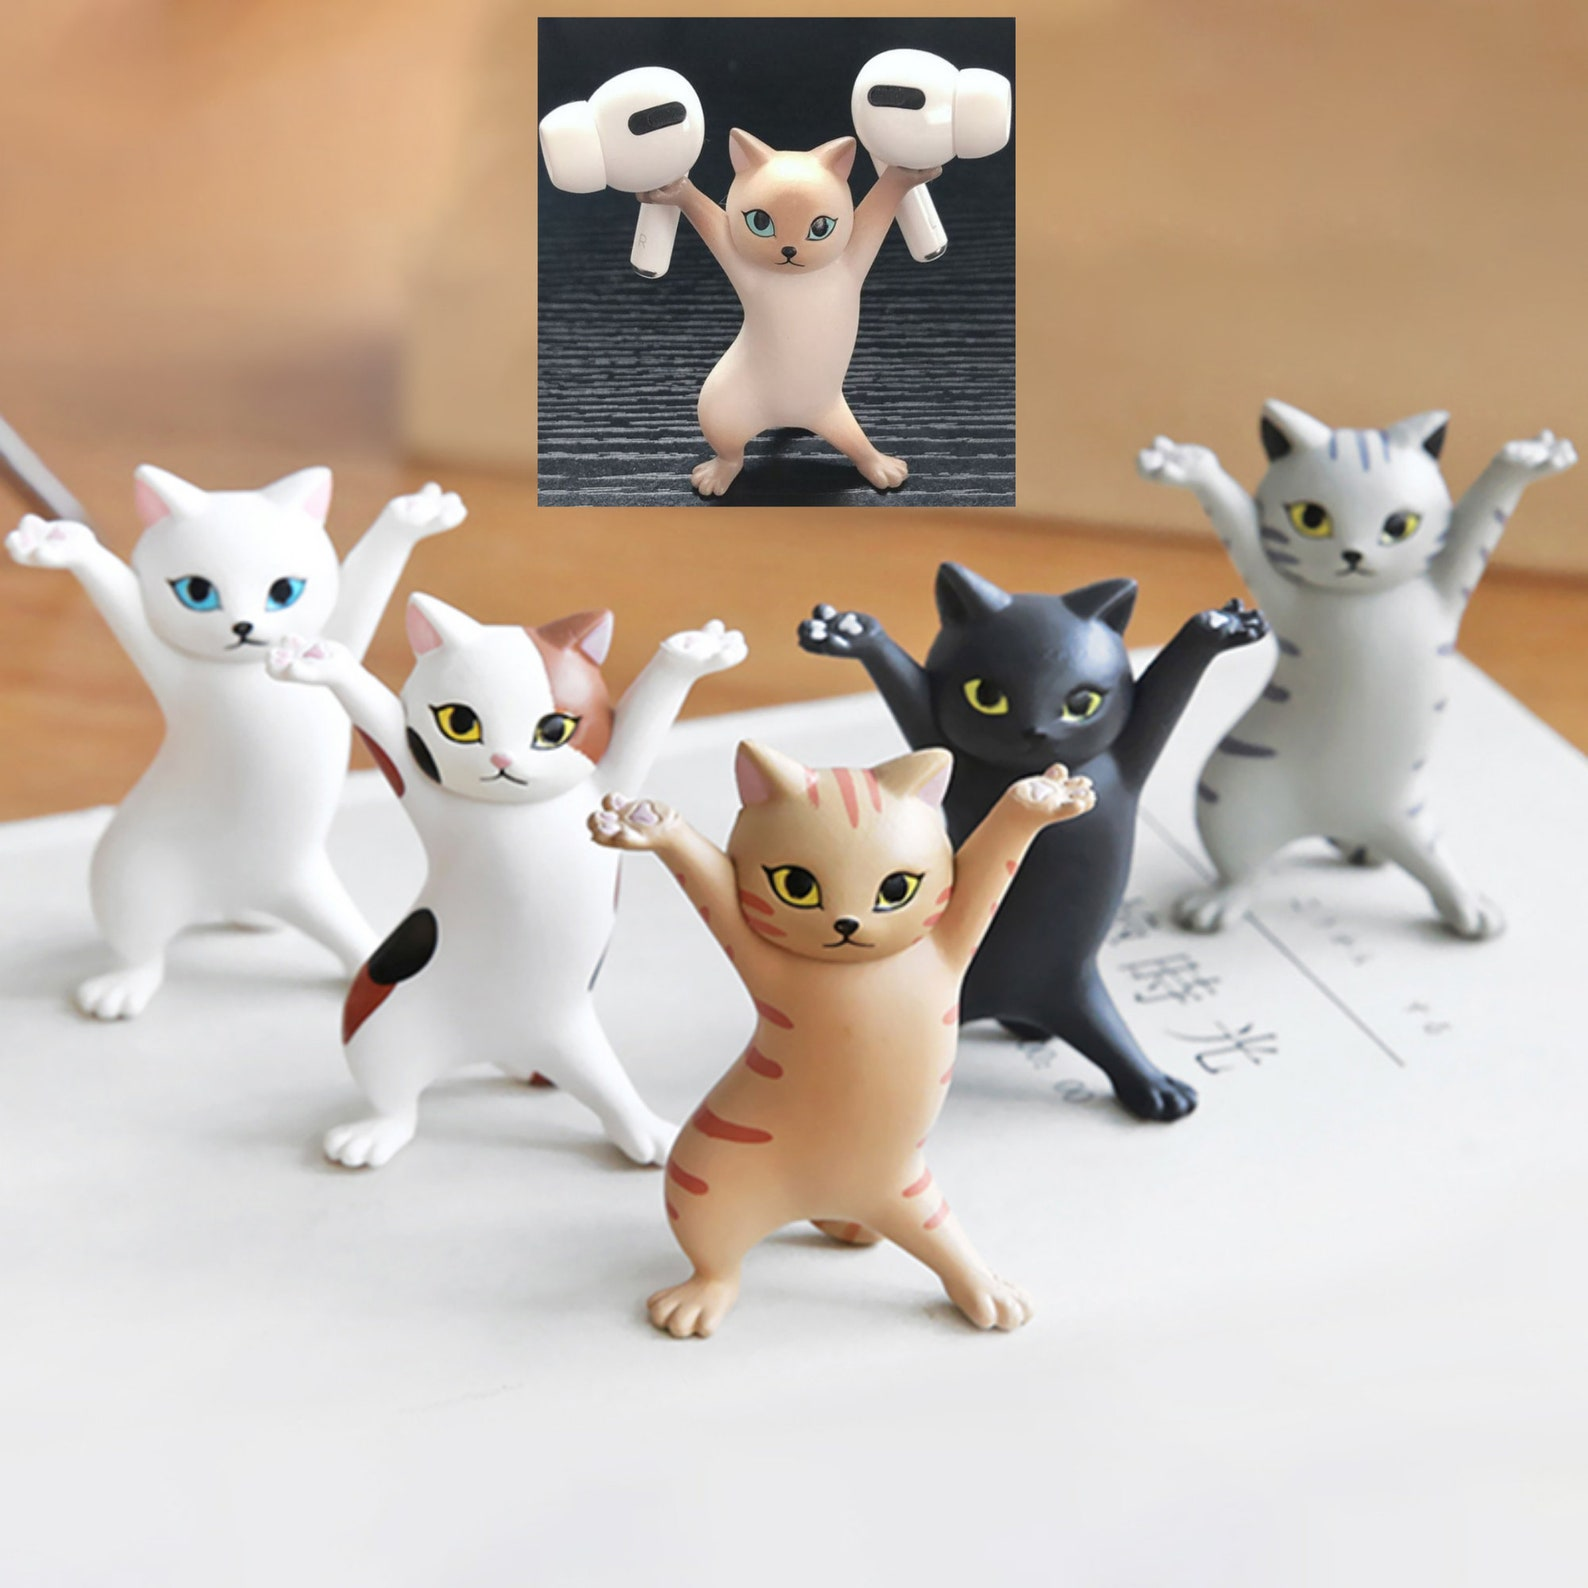 Cat Airpod, Pen and Glasses Holders